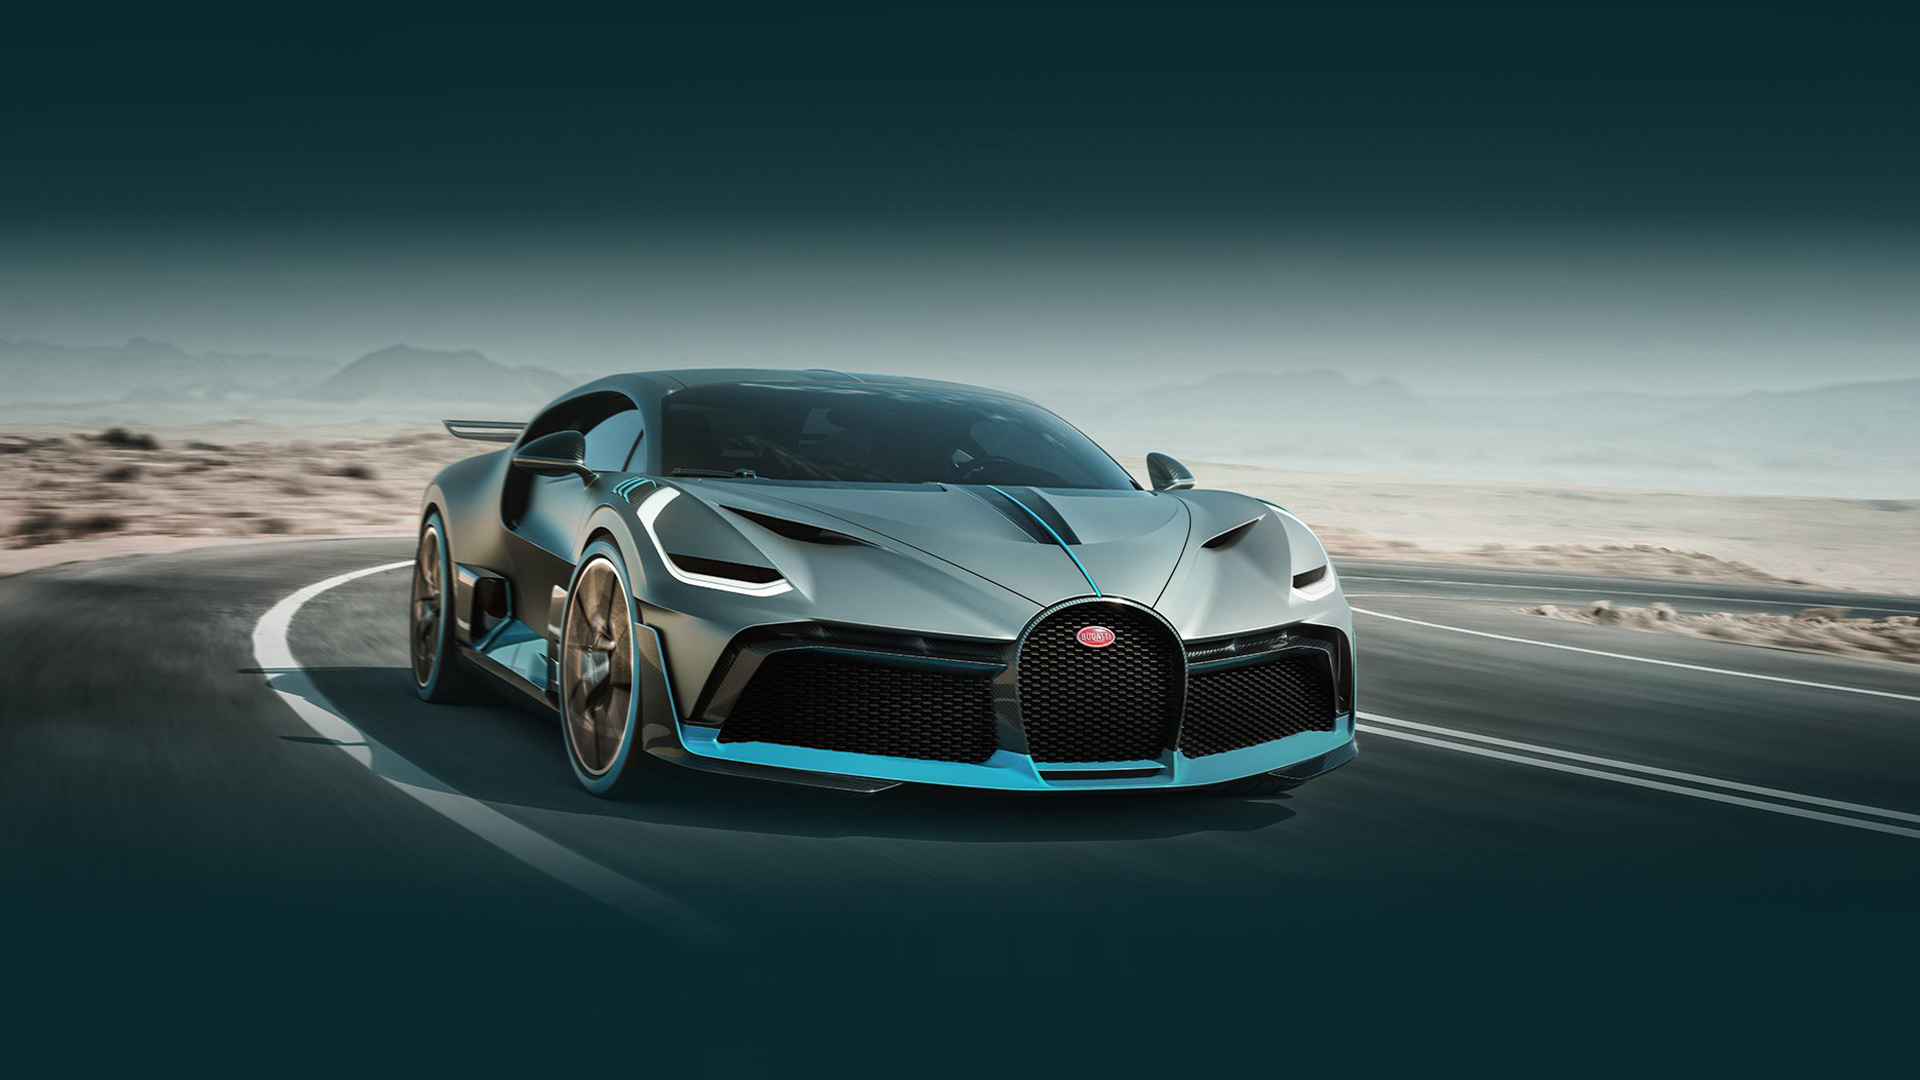 Bugatti Divo Wallpapers Hd For Desktop